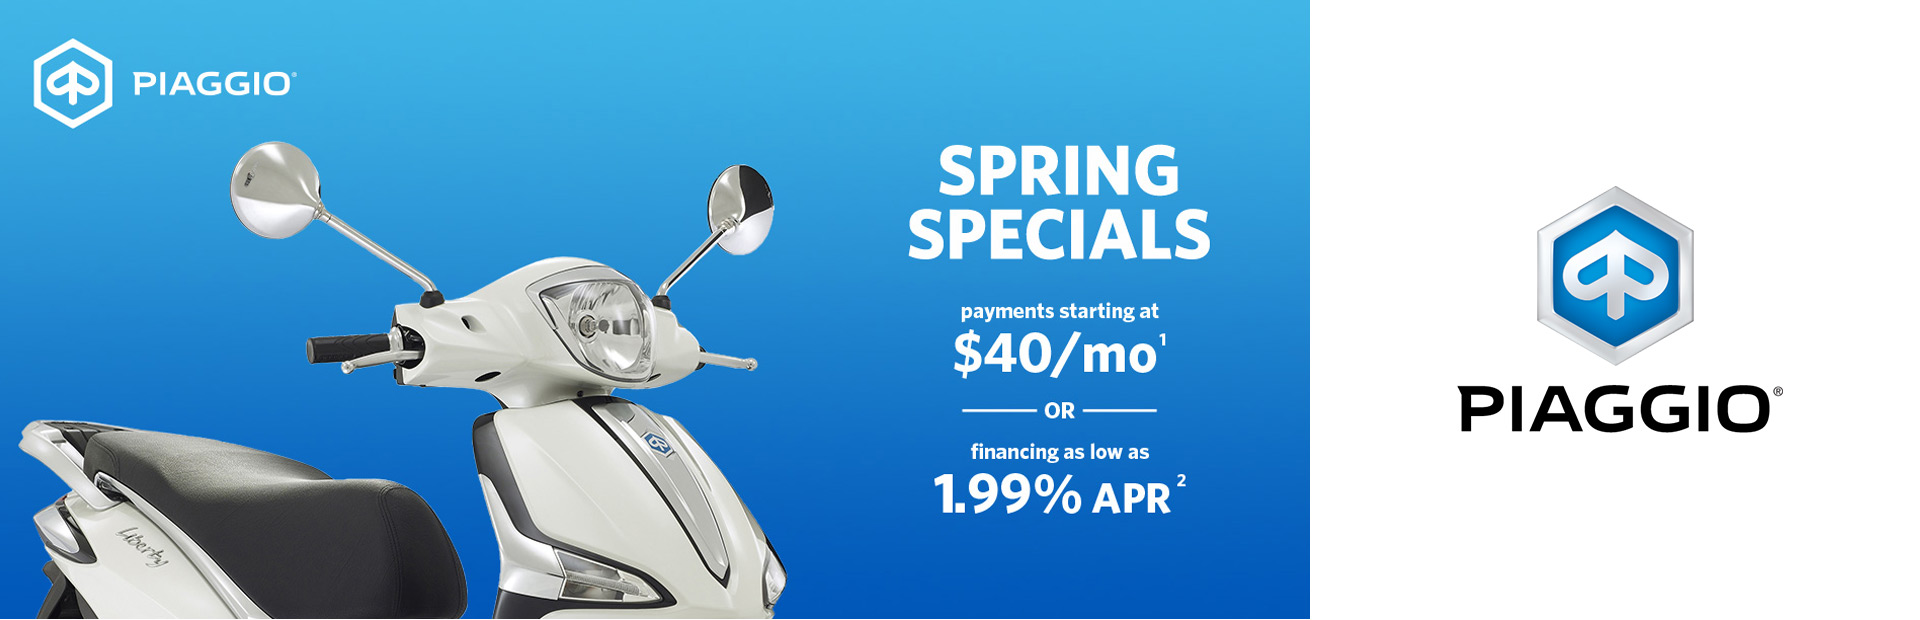 Spring Specials from Piaggio